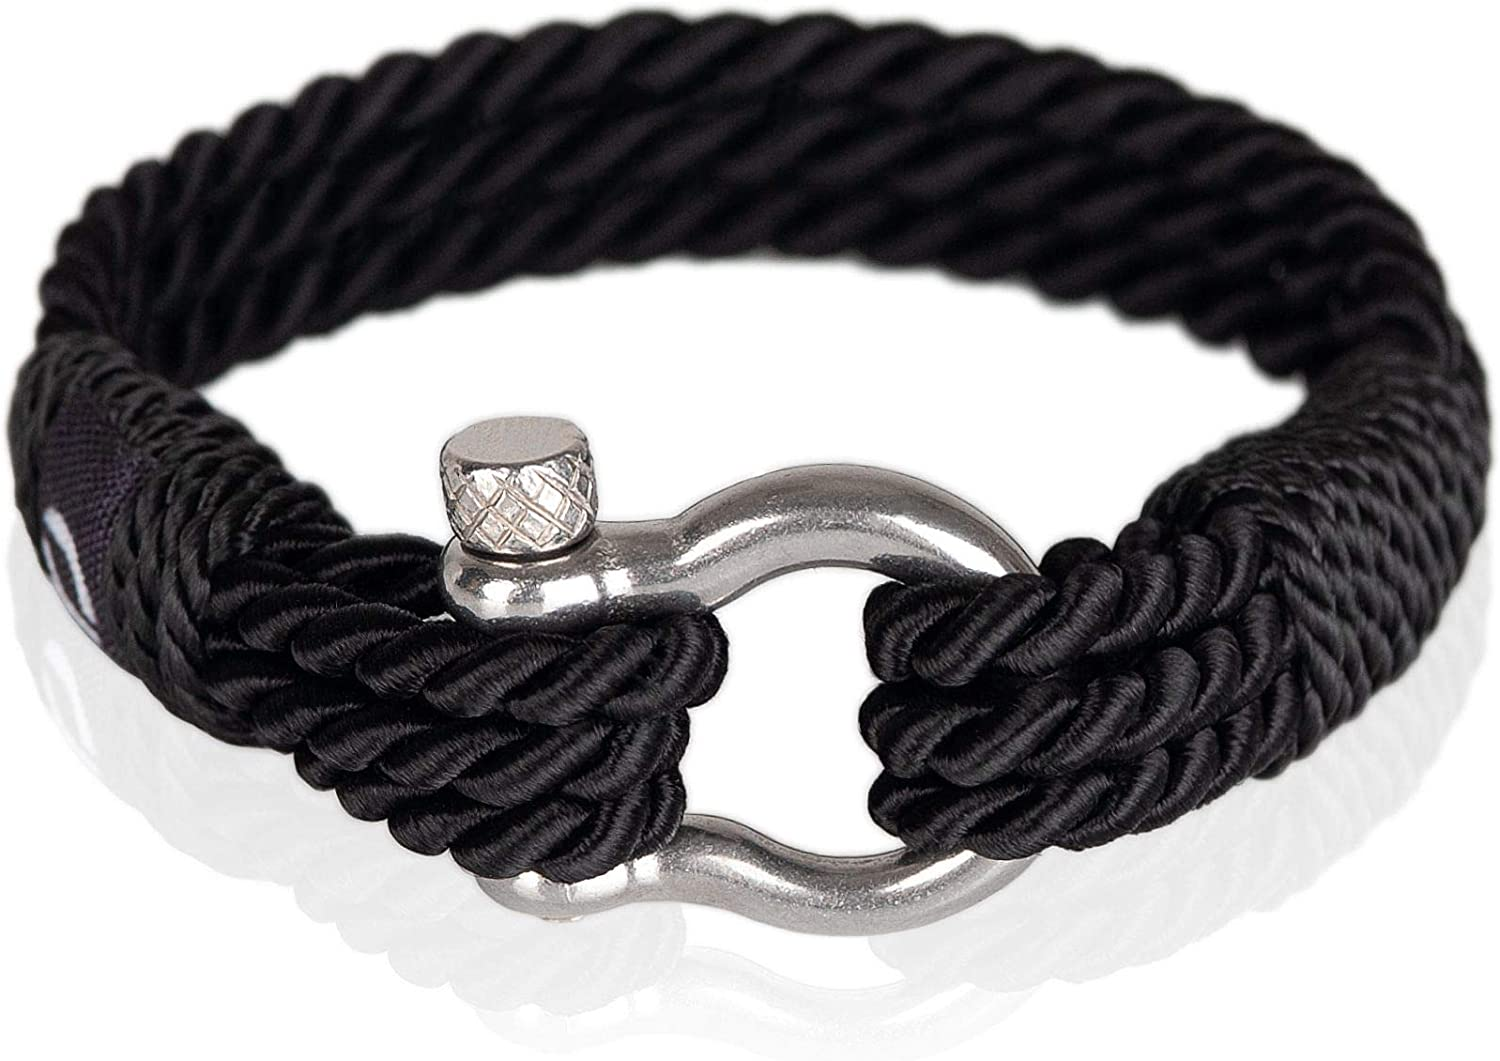 Mover Bracelets | Durable Twisted Rope Mens Bracelet with Shackle | Elegant Re-Made Nautical Style | 5 Rope Colors, 2 Shackle Colors